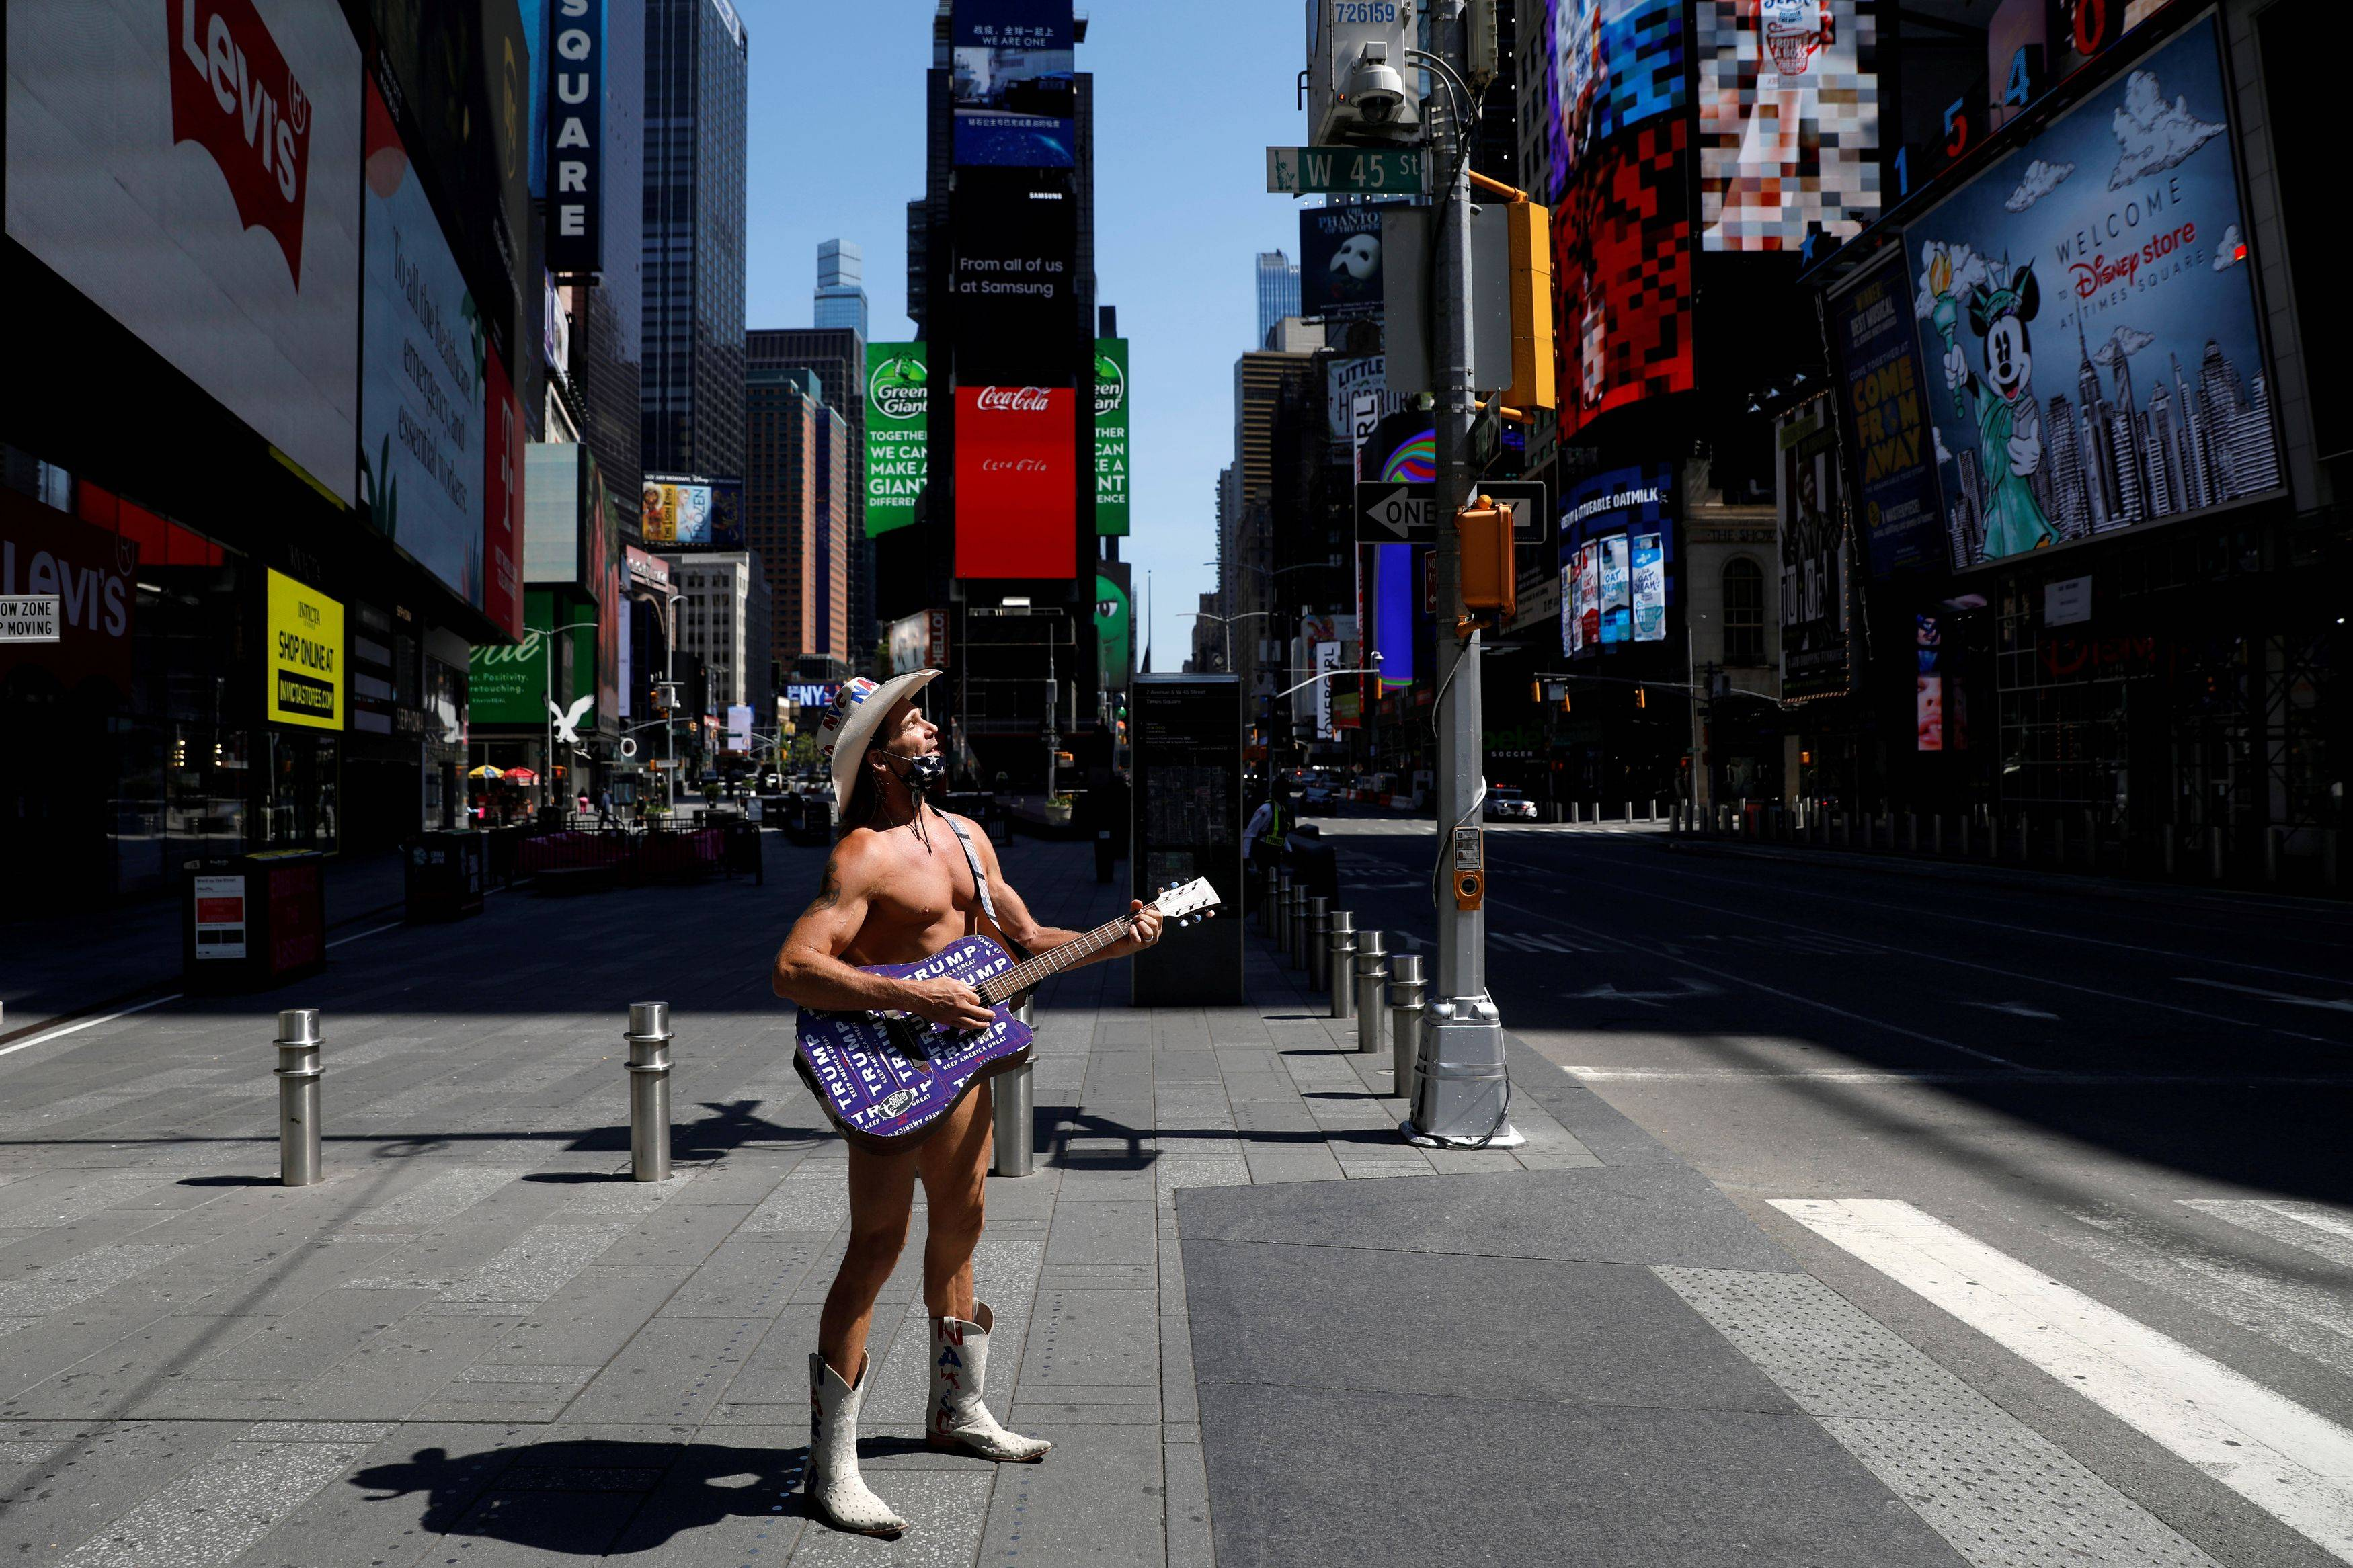 The Naked Cowboy in a nearly empty Times Square last week. (Andrew Kelly/Reuters)